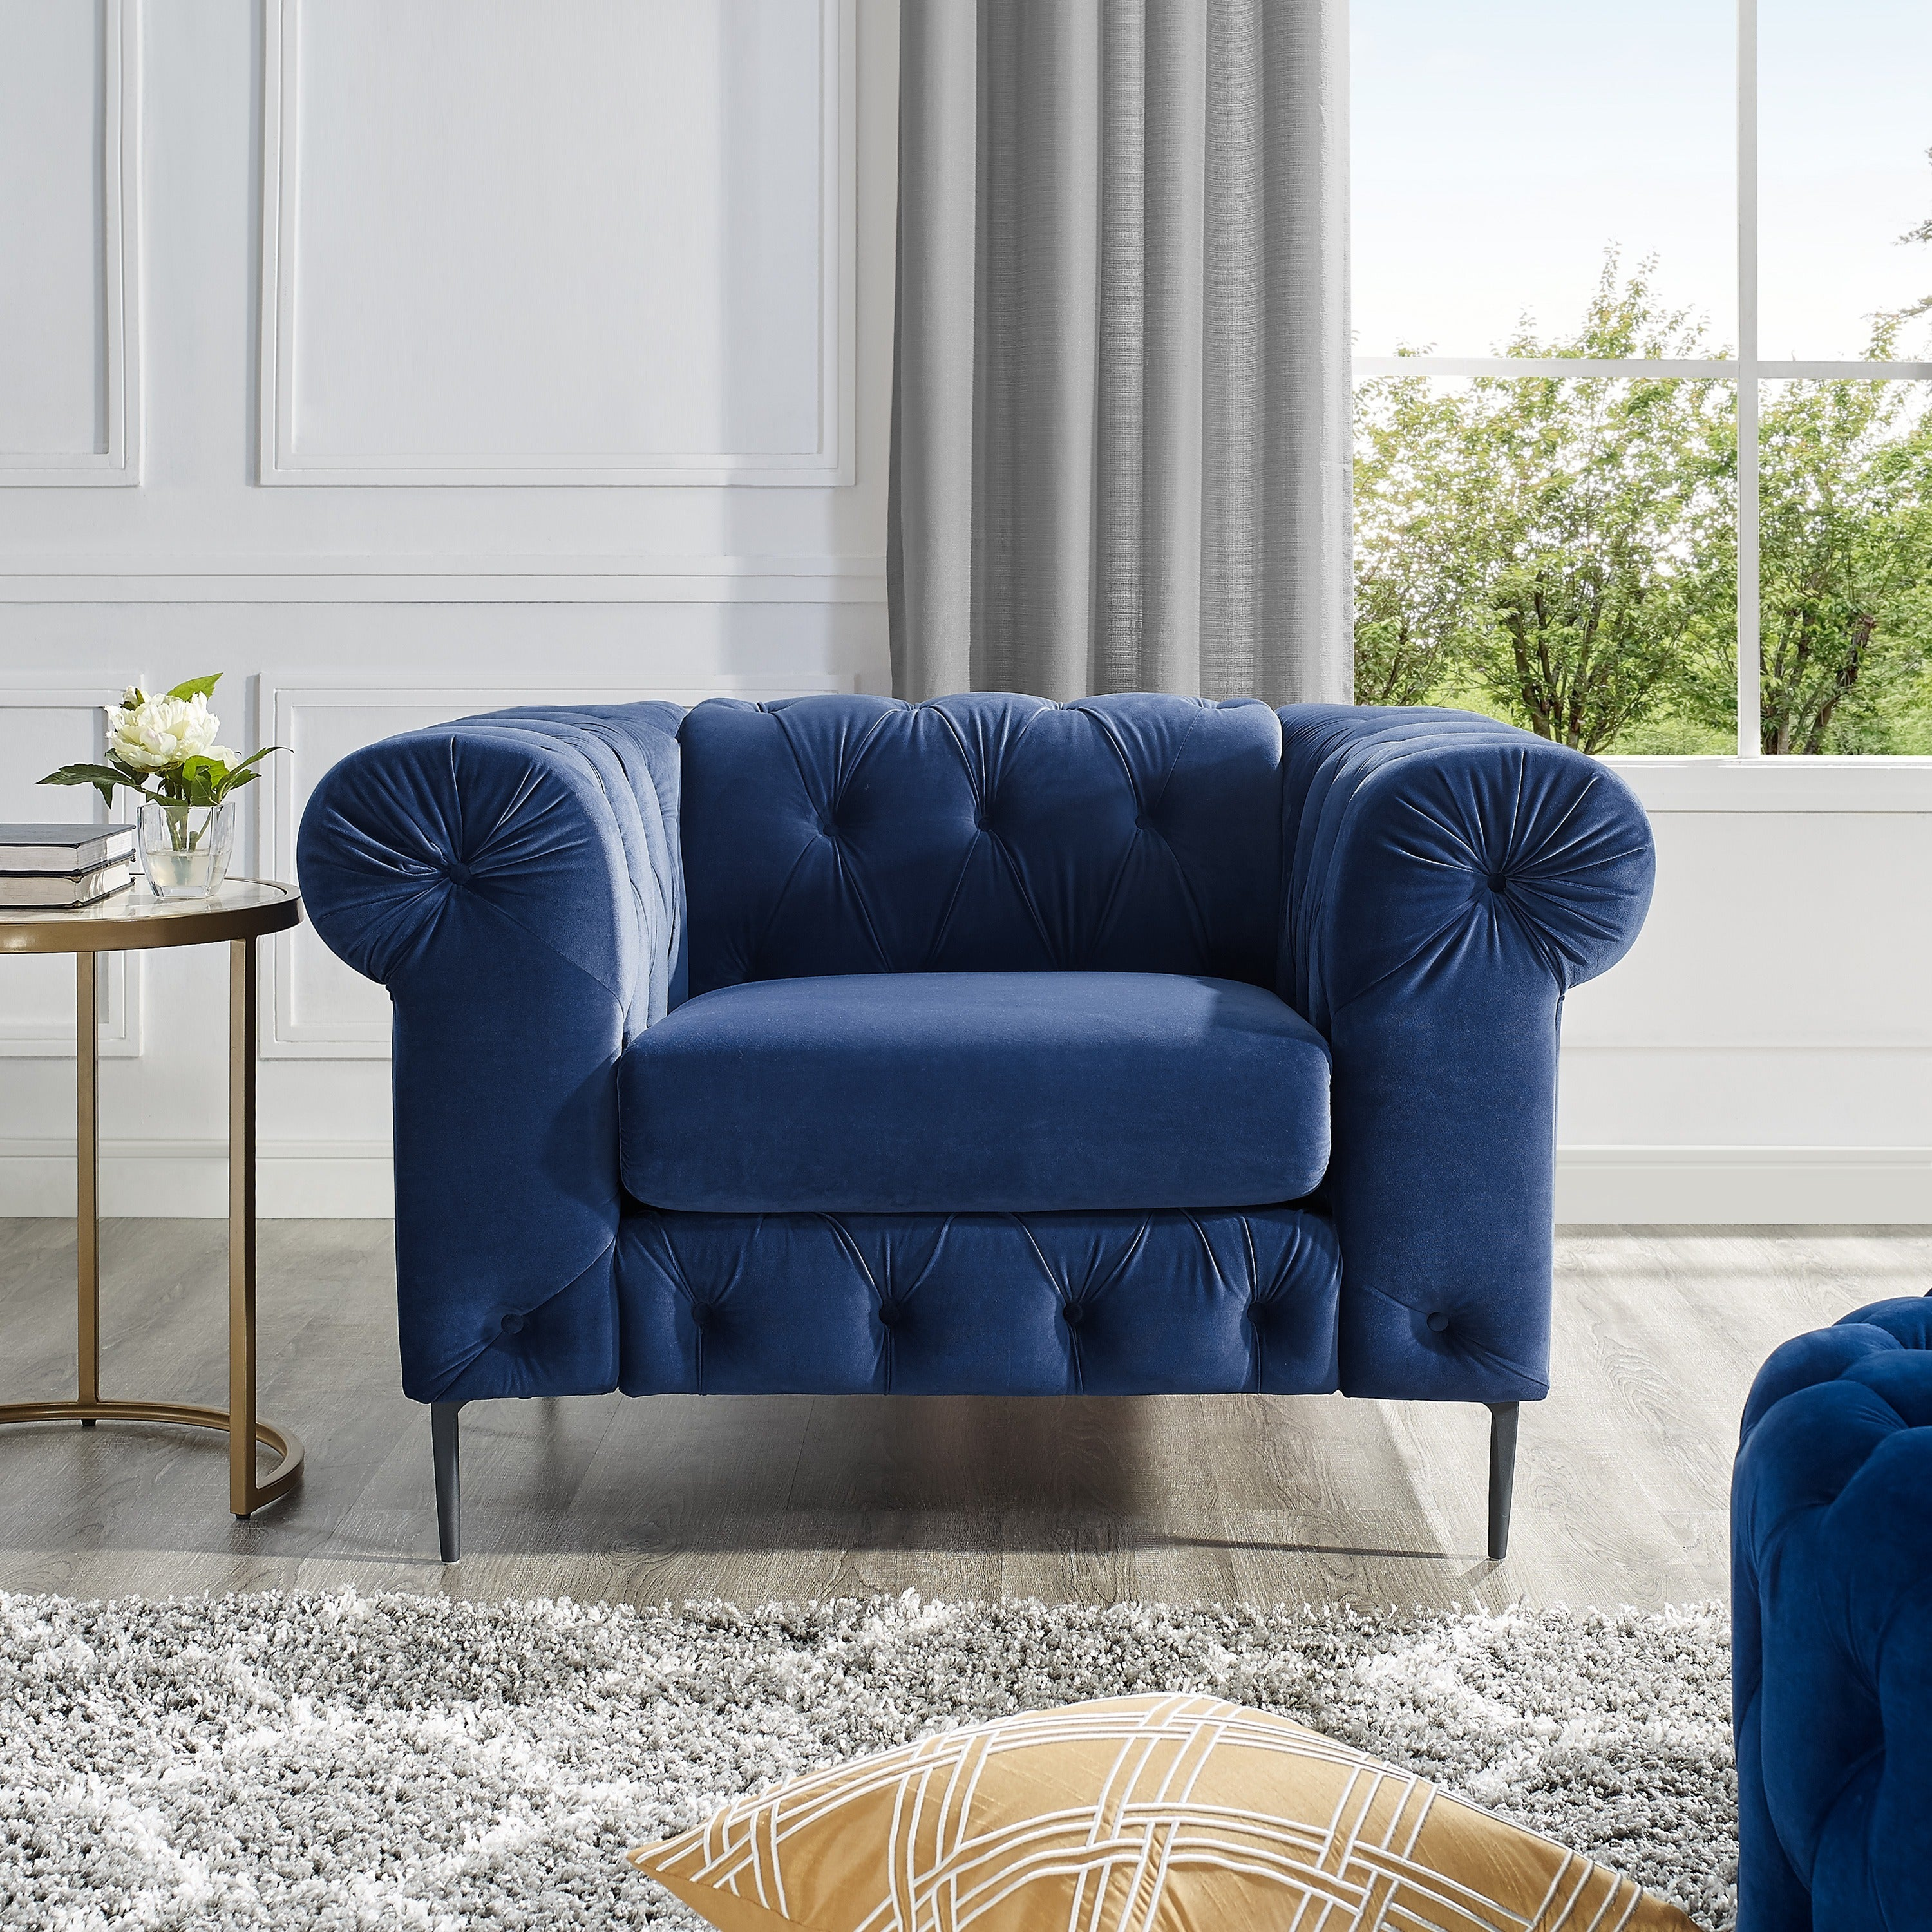 Buy Accent Chairs Sofas U0026 Couches Online At Overstock.com | Our Best Living  Room Furniture Deals